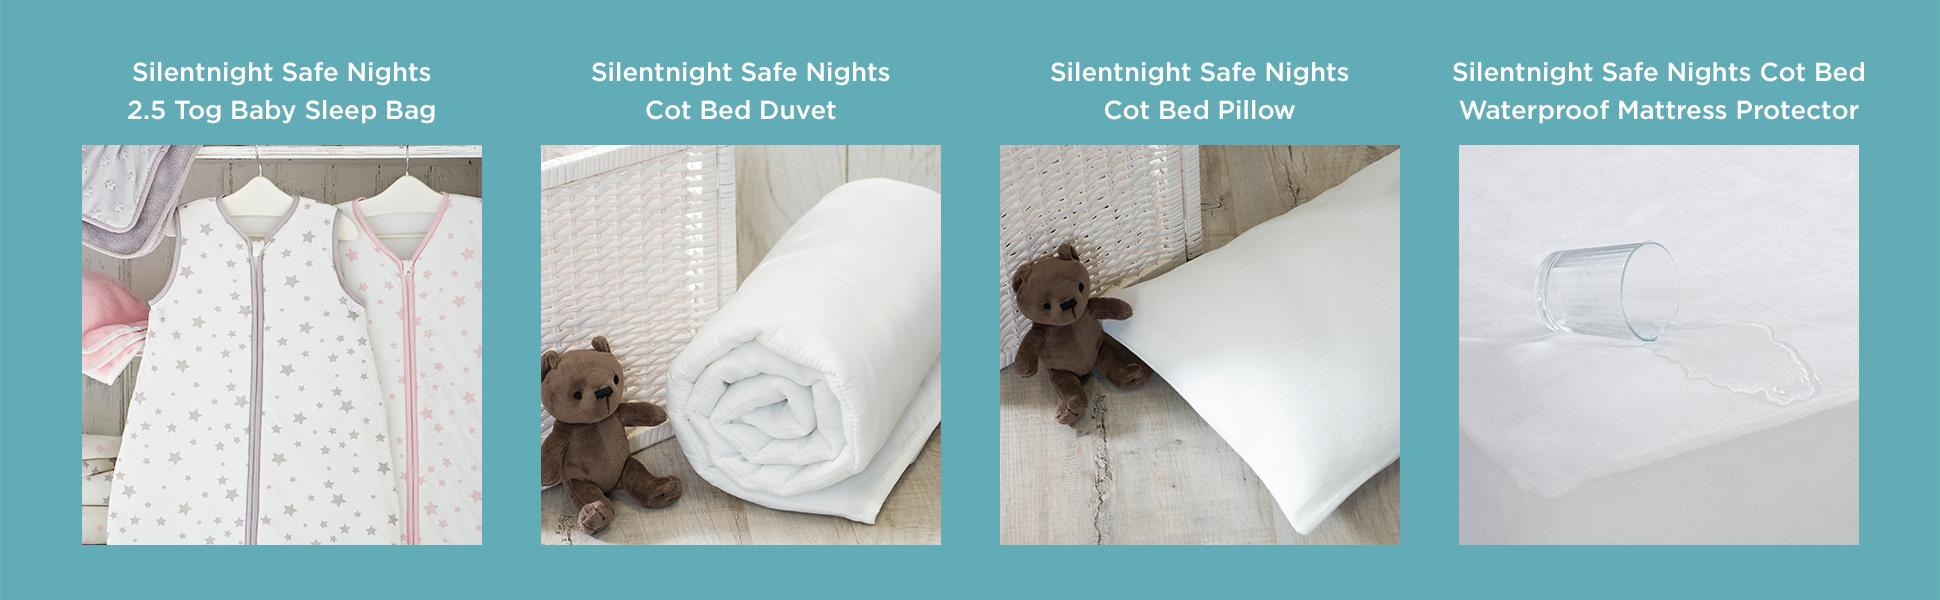 Silentnight Safe Nights Nursery Cot Bed Duvet Cover